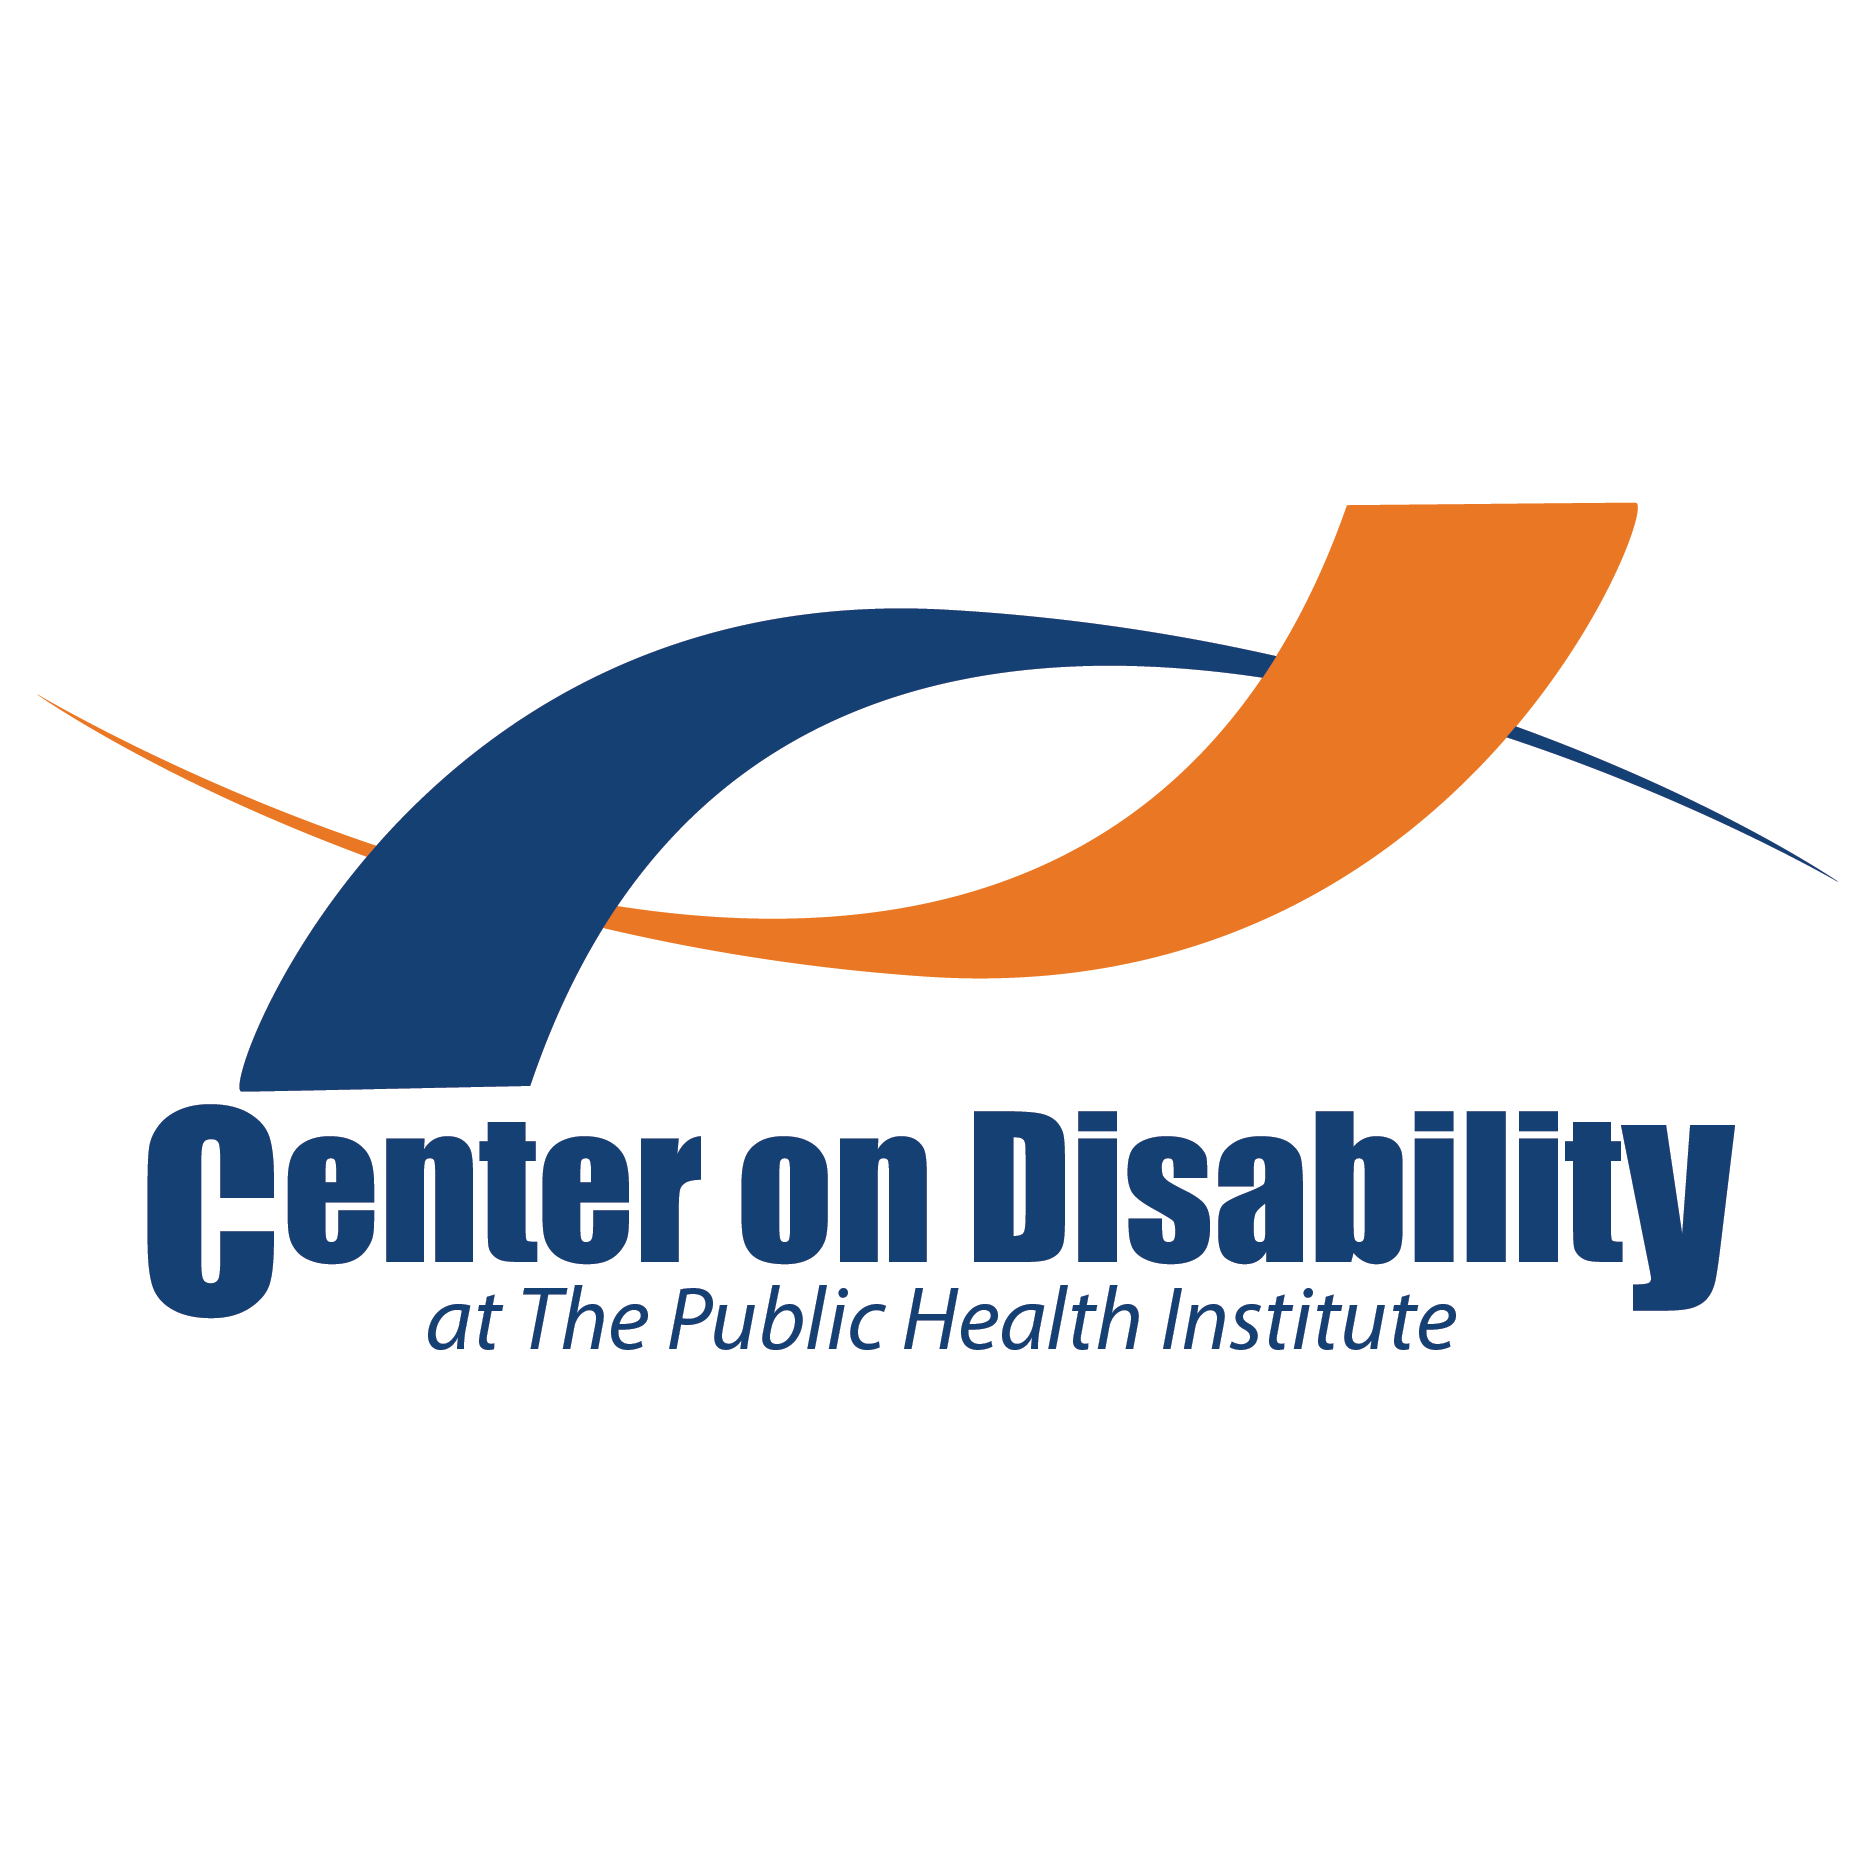 Center on Disability at the Public Health Institute